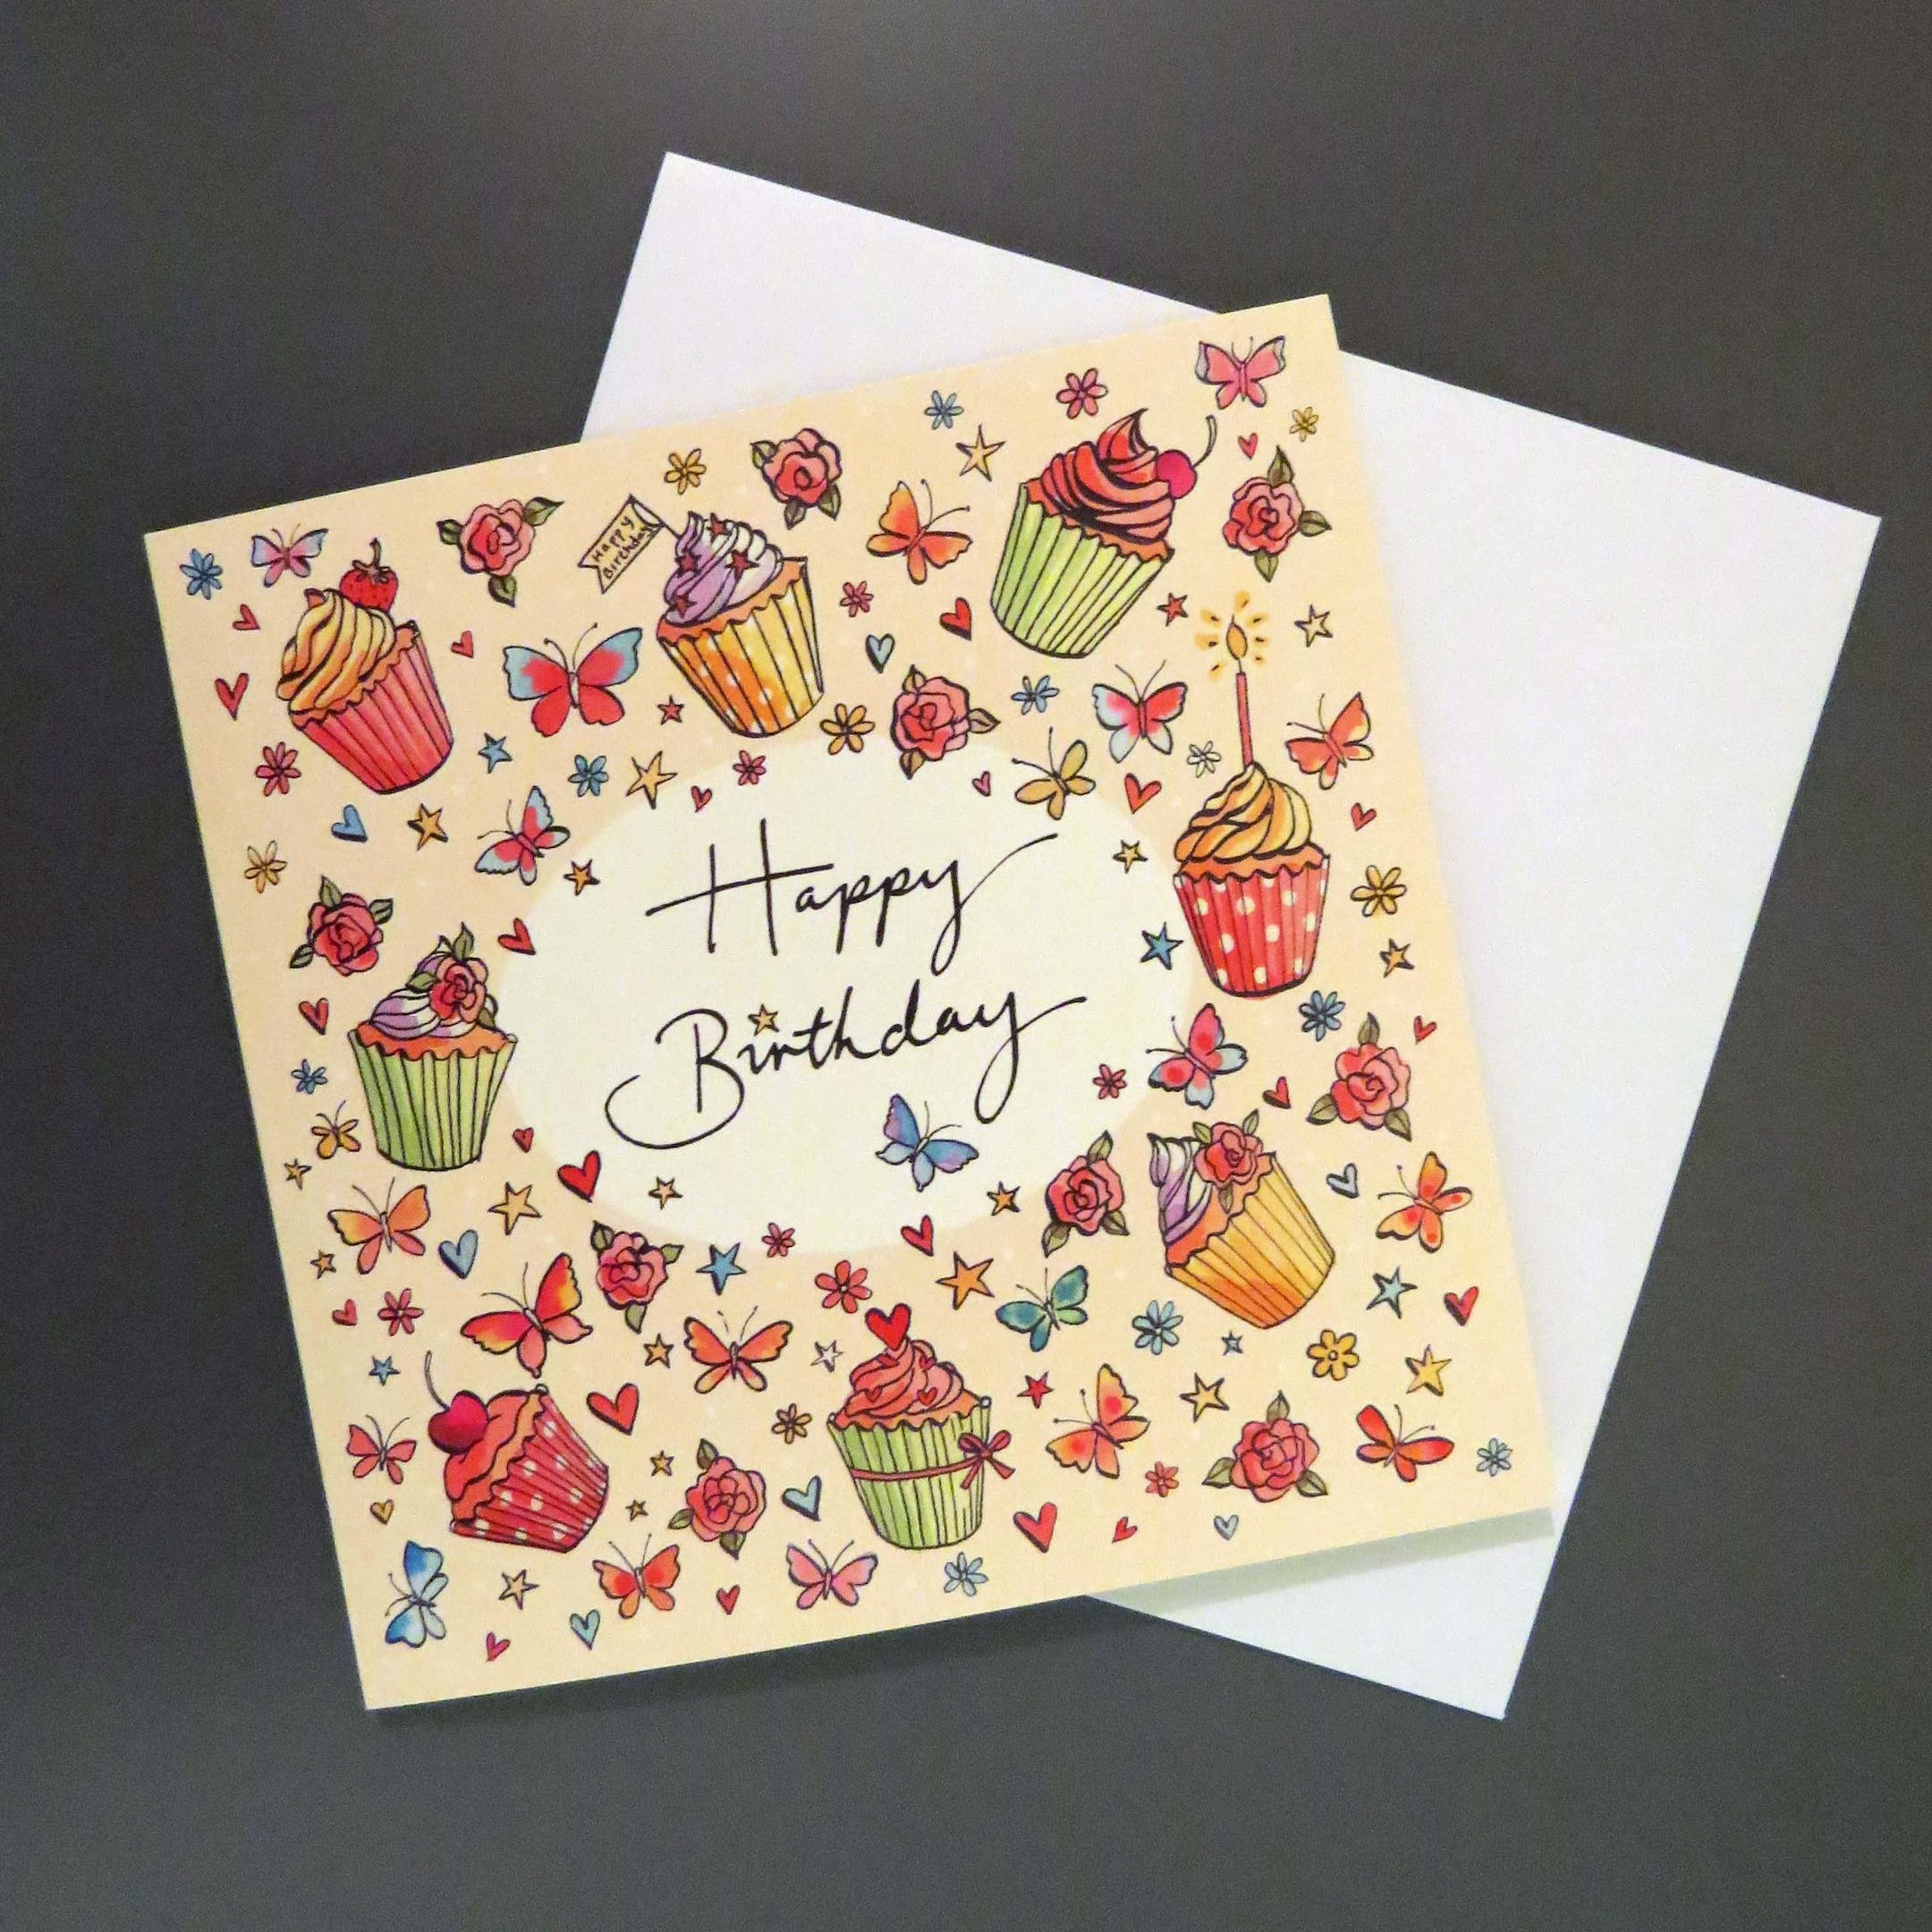 Happy Birthday - Cupcake Card - Forget-Me-Not Christian Cards